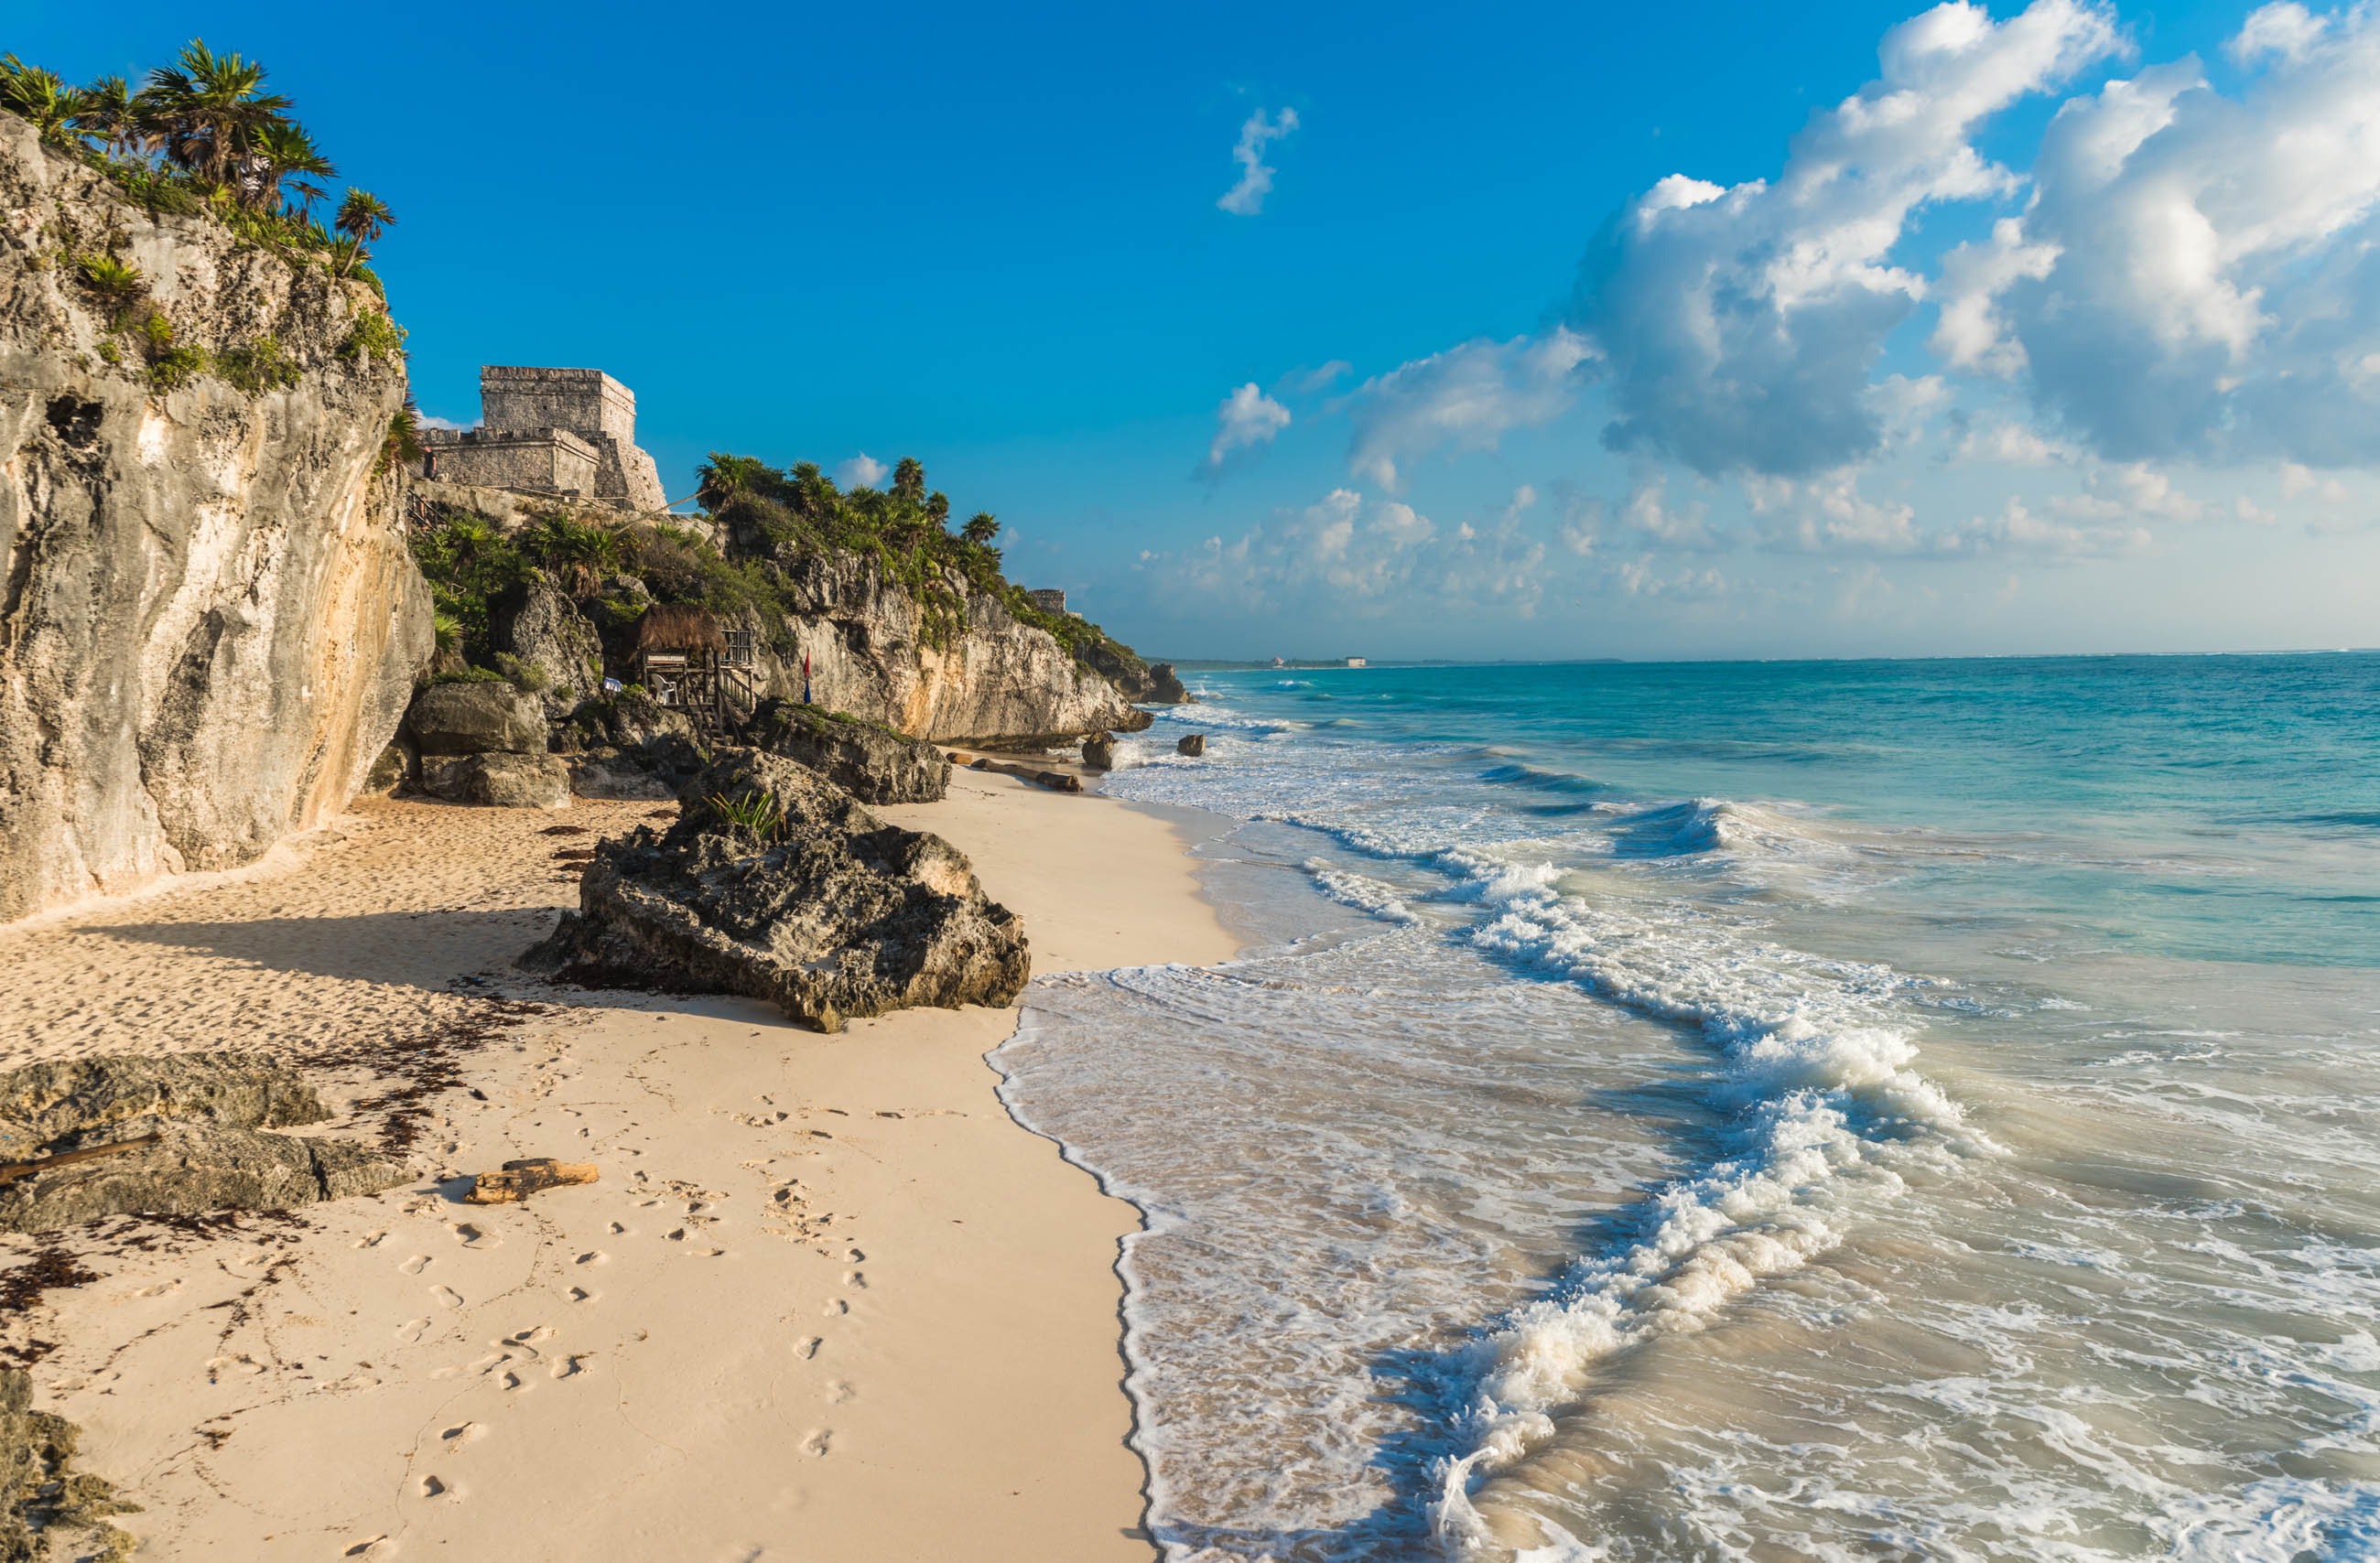 https://bubo.sk/uploads/galleries/3464/shutterstock_mexiko_tulum-yuacatan_559532839-14.jpg